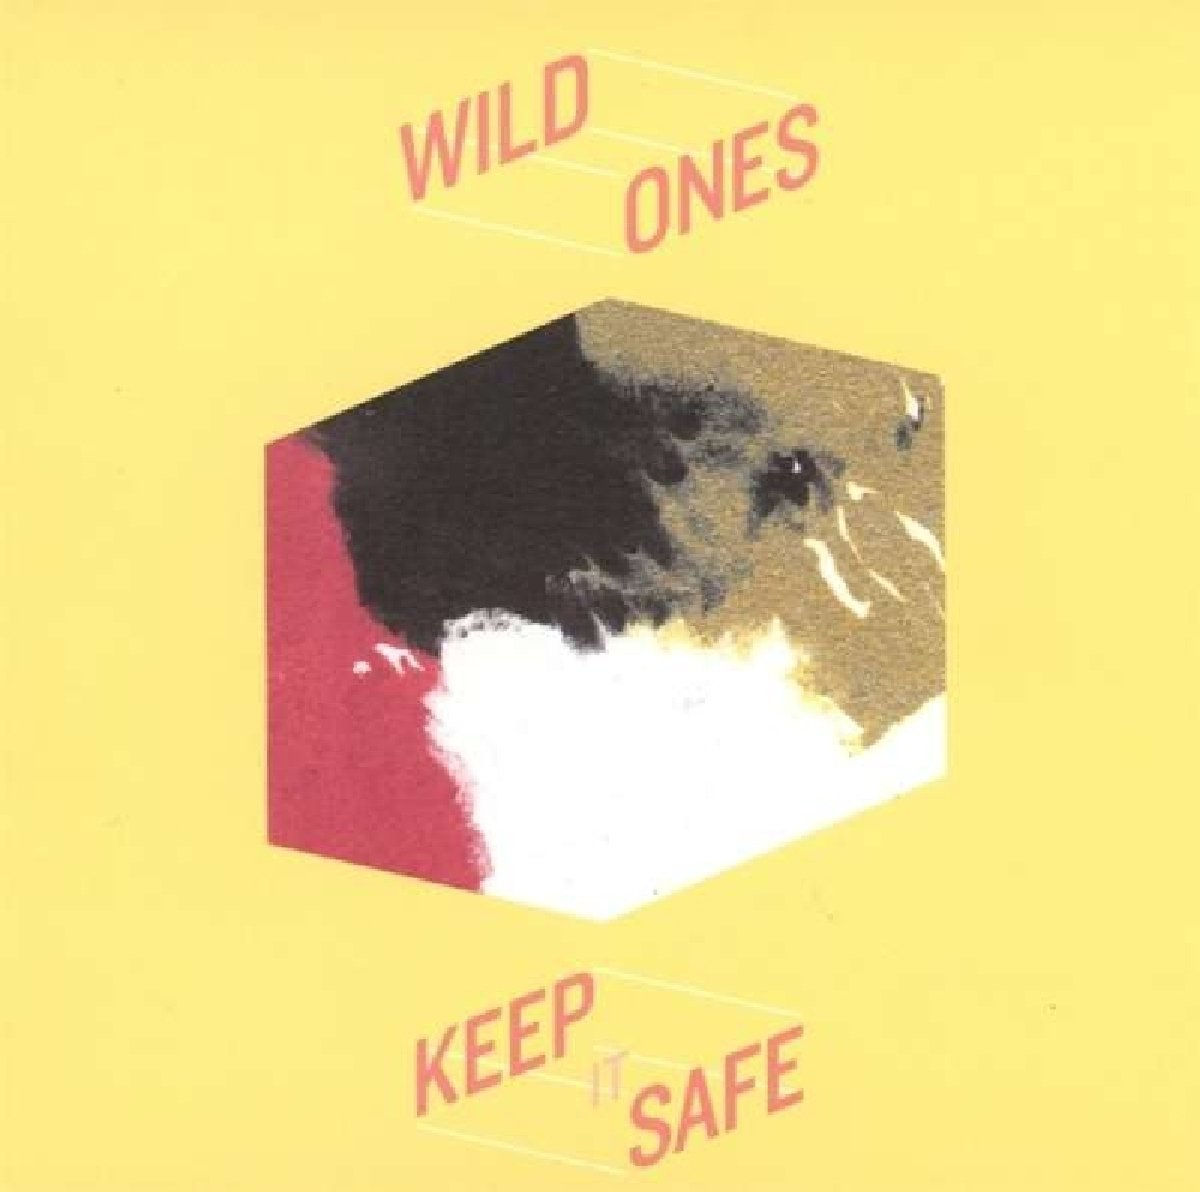 CD : Wild Ones - Keep It Safe (Digipack Packaging)